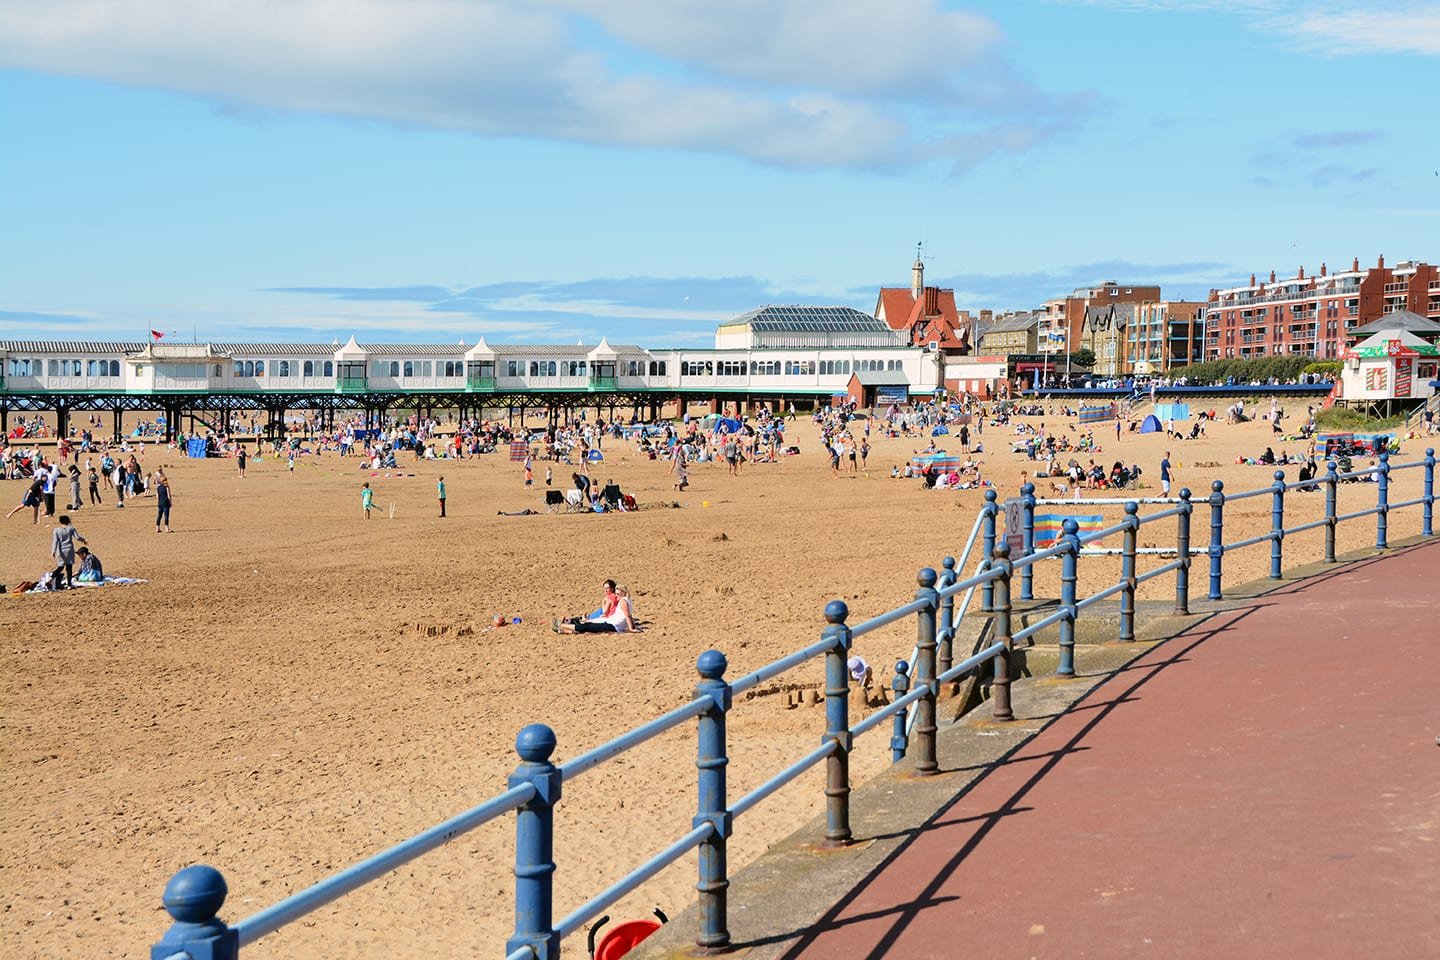 St Annes seafront - the beach and pier